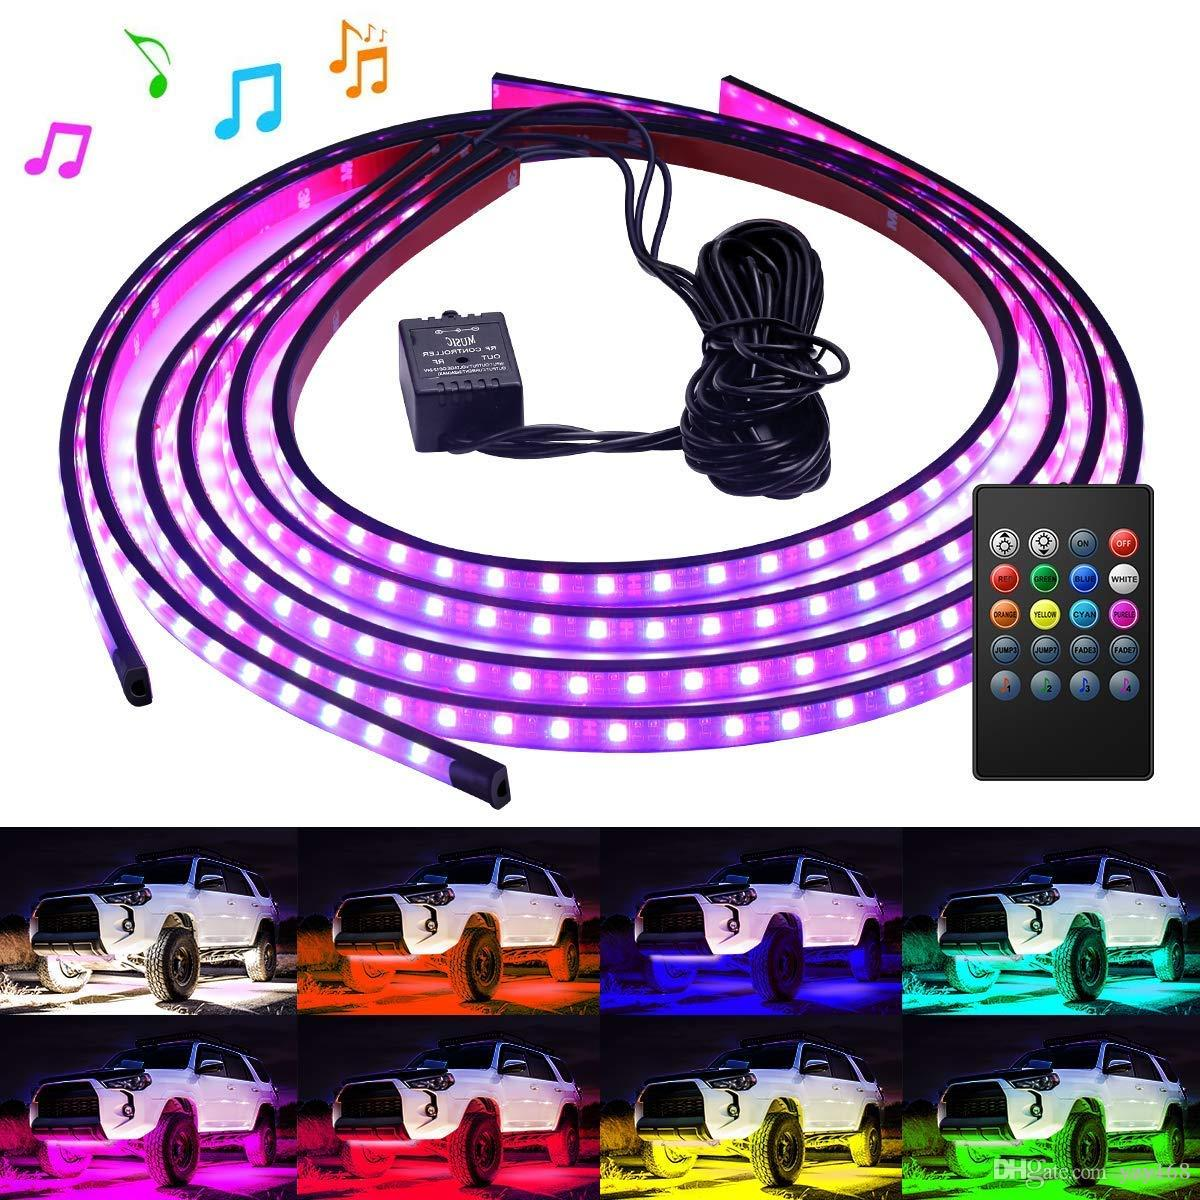 Govee Car Underglow Lights, 4 Pcs Led Strip Car Lights, 8 Color Neon Accent Lights Strip, Sync to Music, Wireless Remote Control